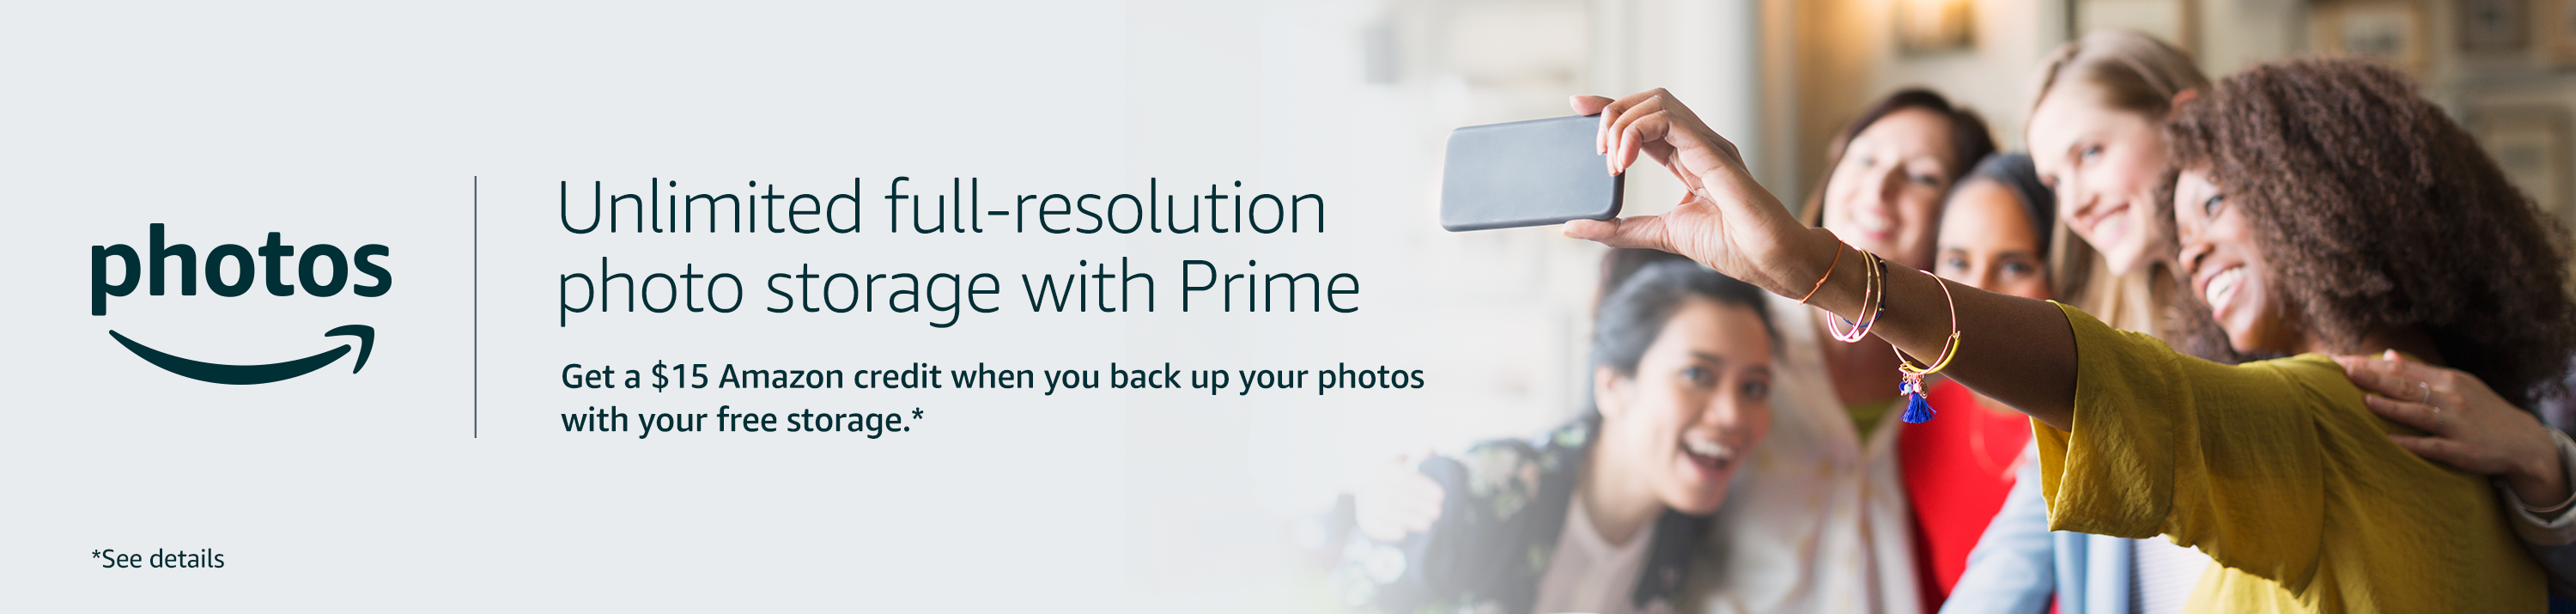 Unlimited full-resolution photo storage with Prime